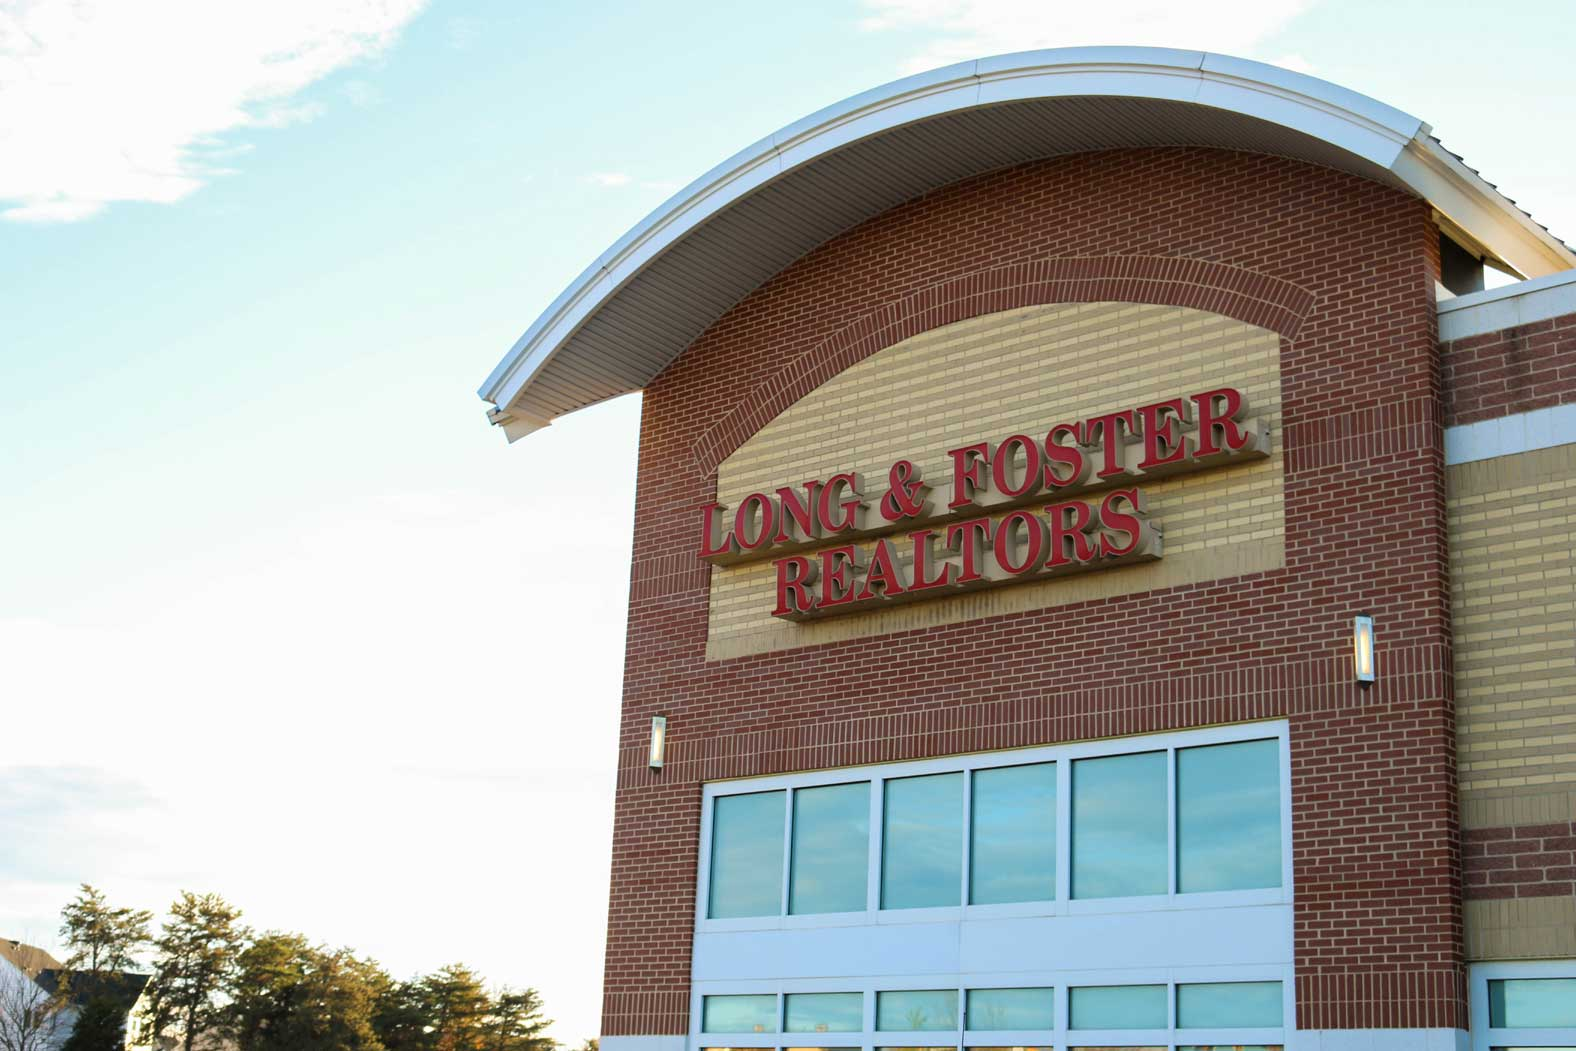 Long & Foster in Gainesville, VA